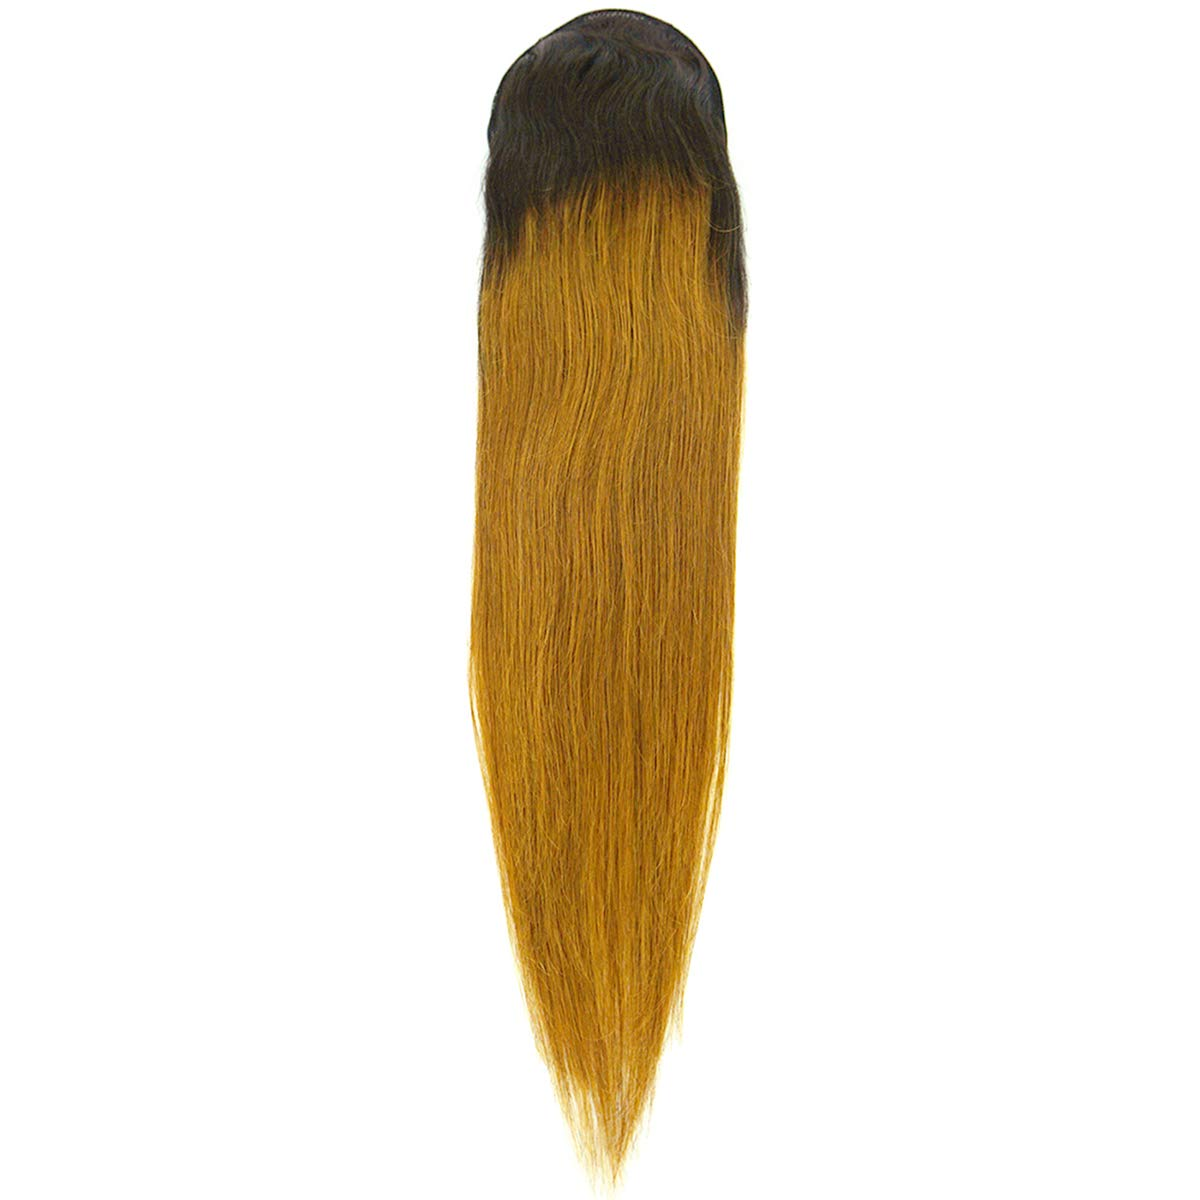 Feelgrace Drawstring New Shipping Free Straight Ponytail Hair Extension Ombr Max 79% OFF Human